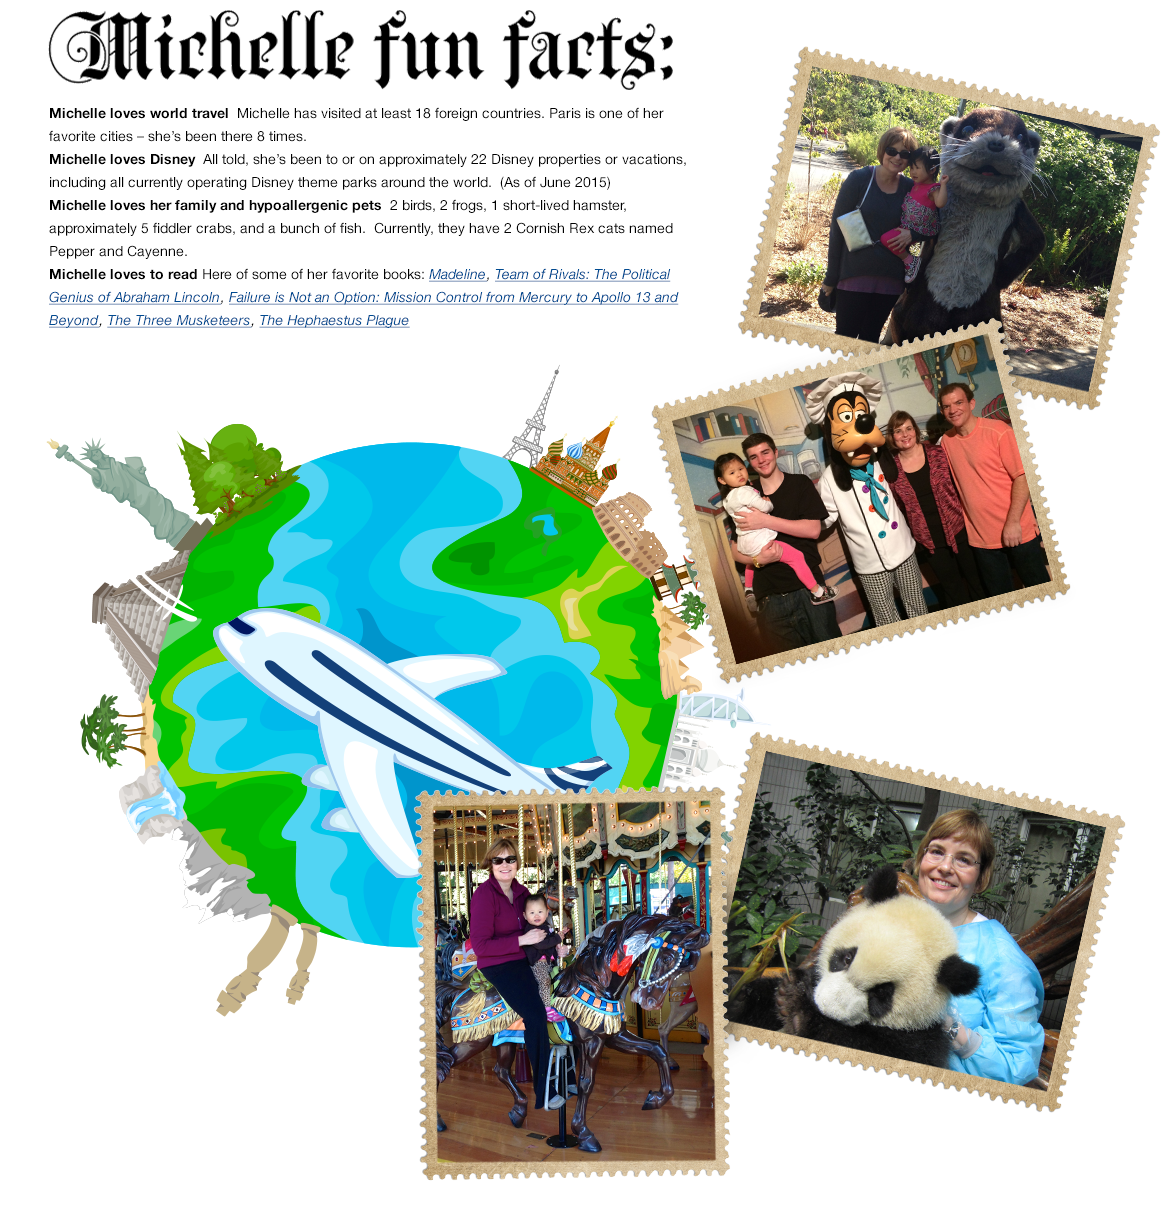 Michelle Wilson Fun Facts